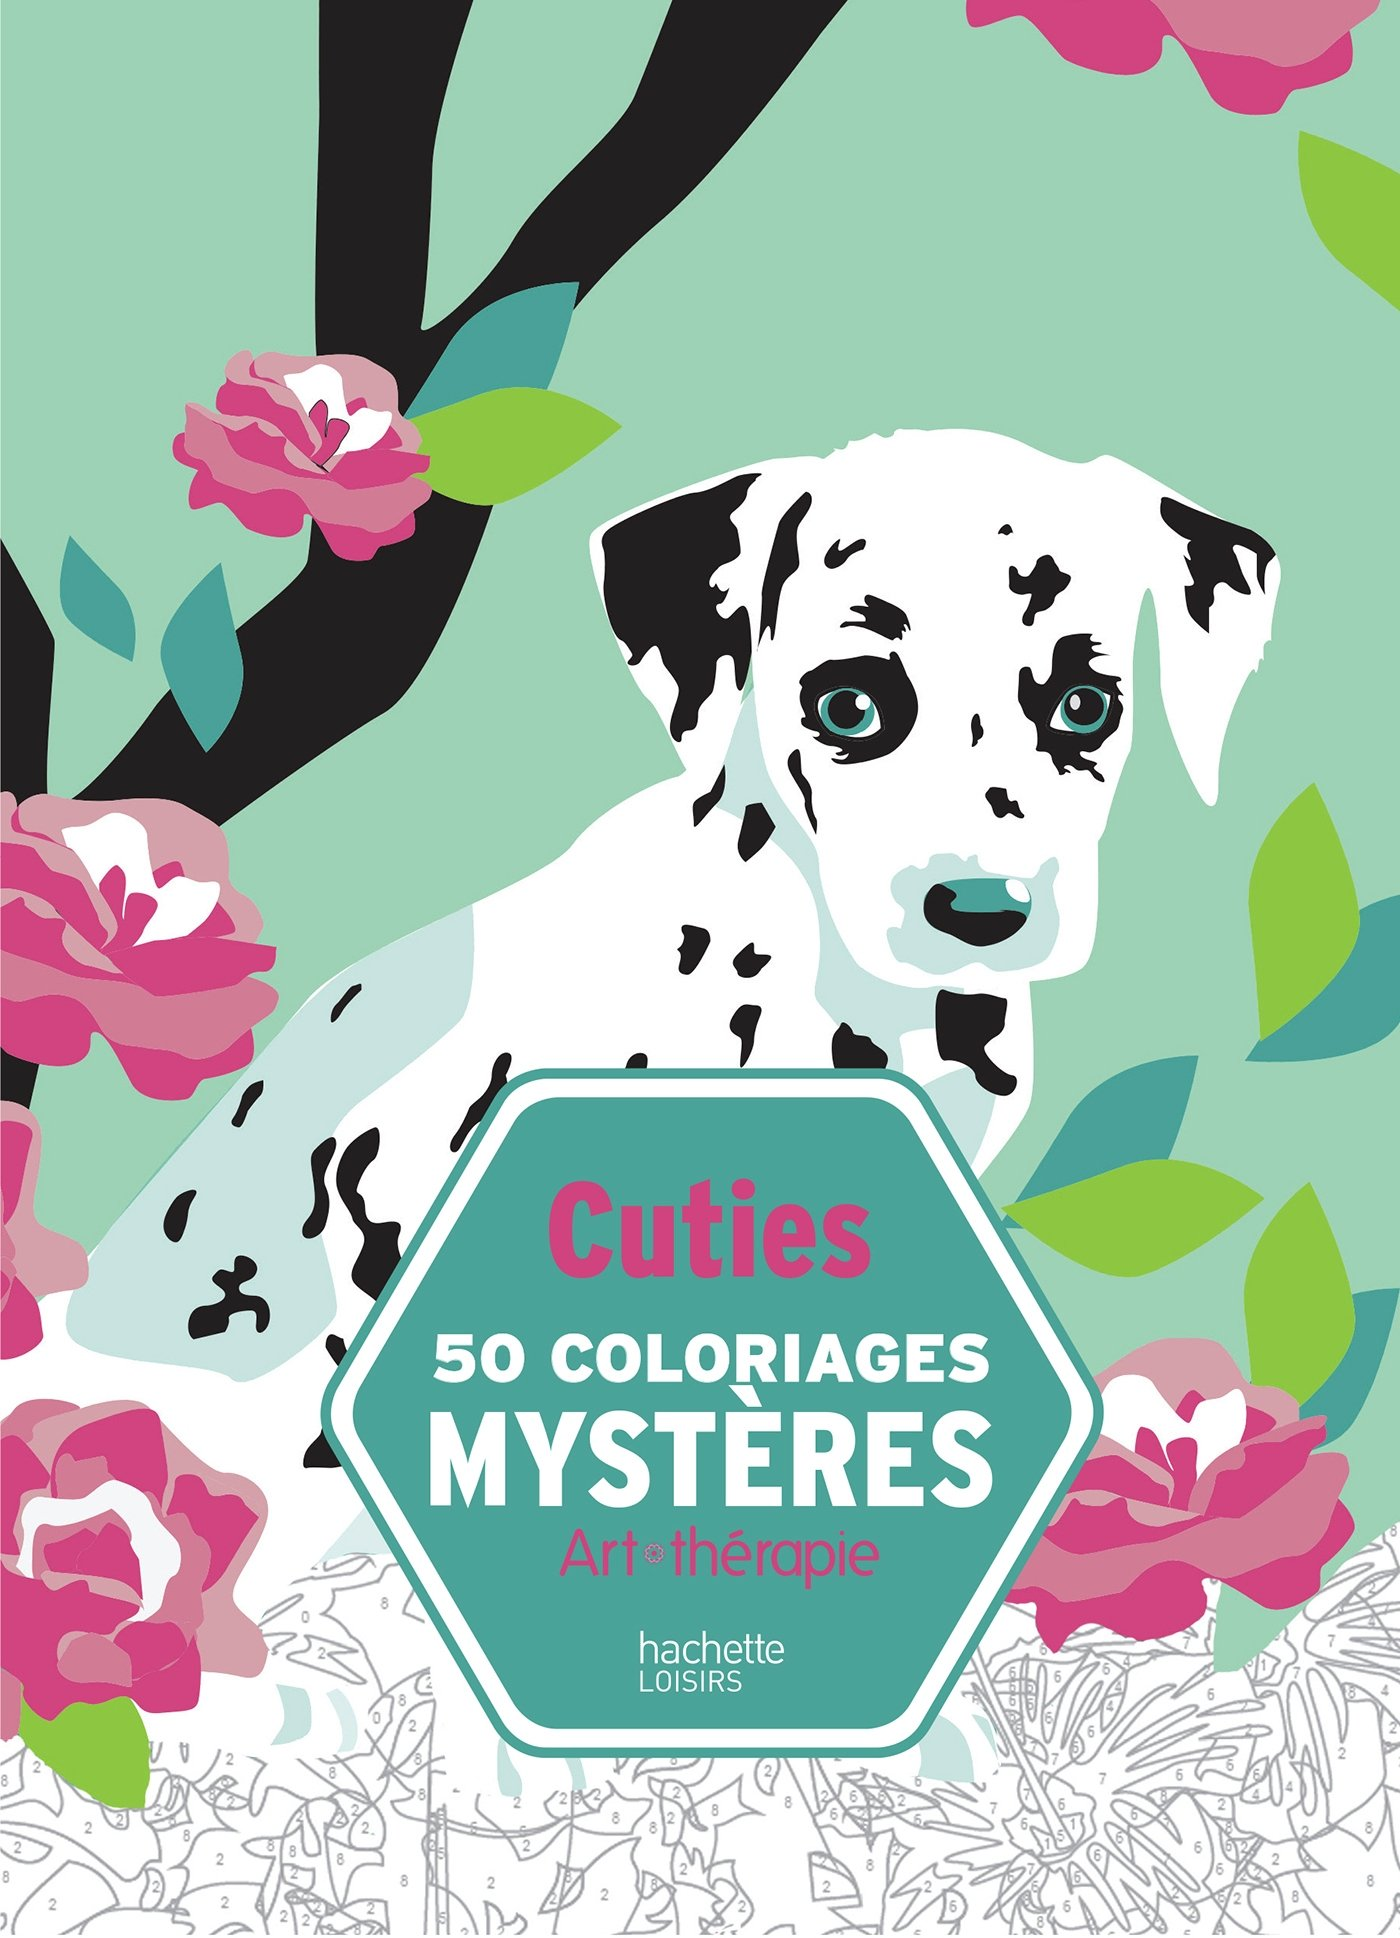 Cuties 50 coloriages mystères – coloriages animaux anti-stress [ coloring book for adults ] (Art thérapie) (French Edition)